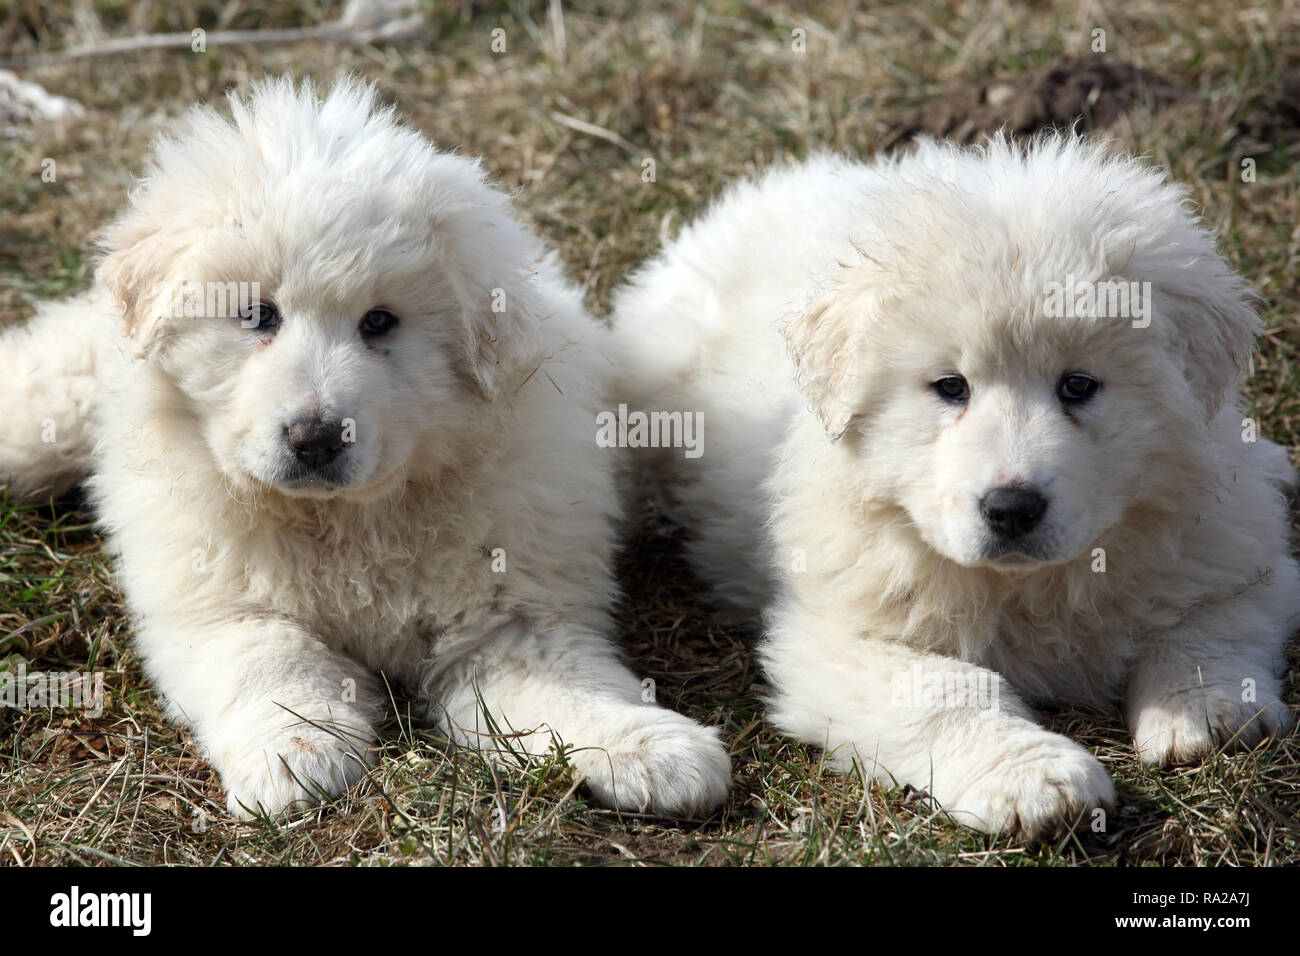 Schutzhunde High Resolution Stock Photography And Images Alamy